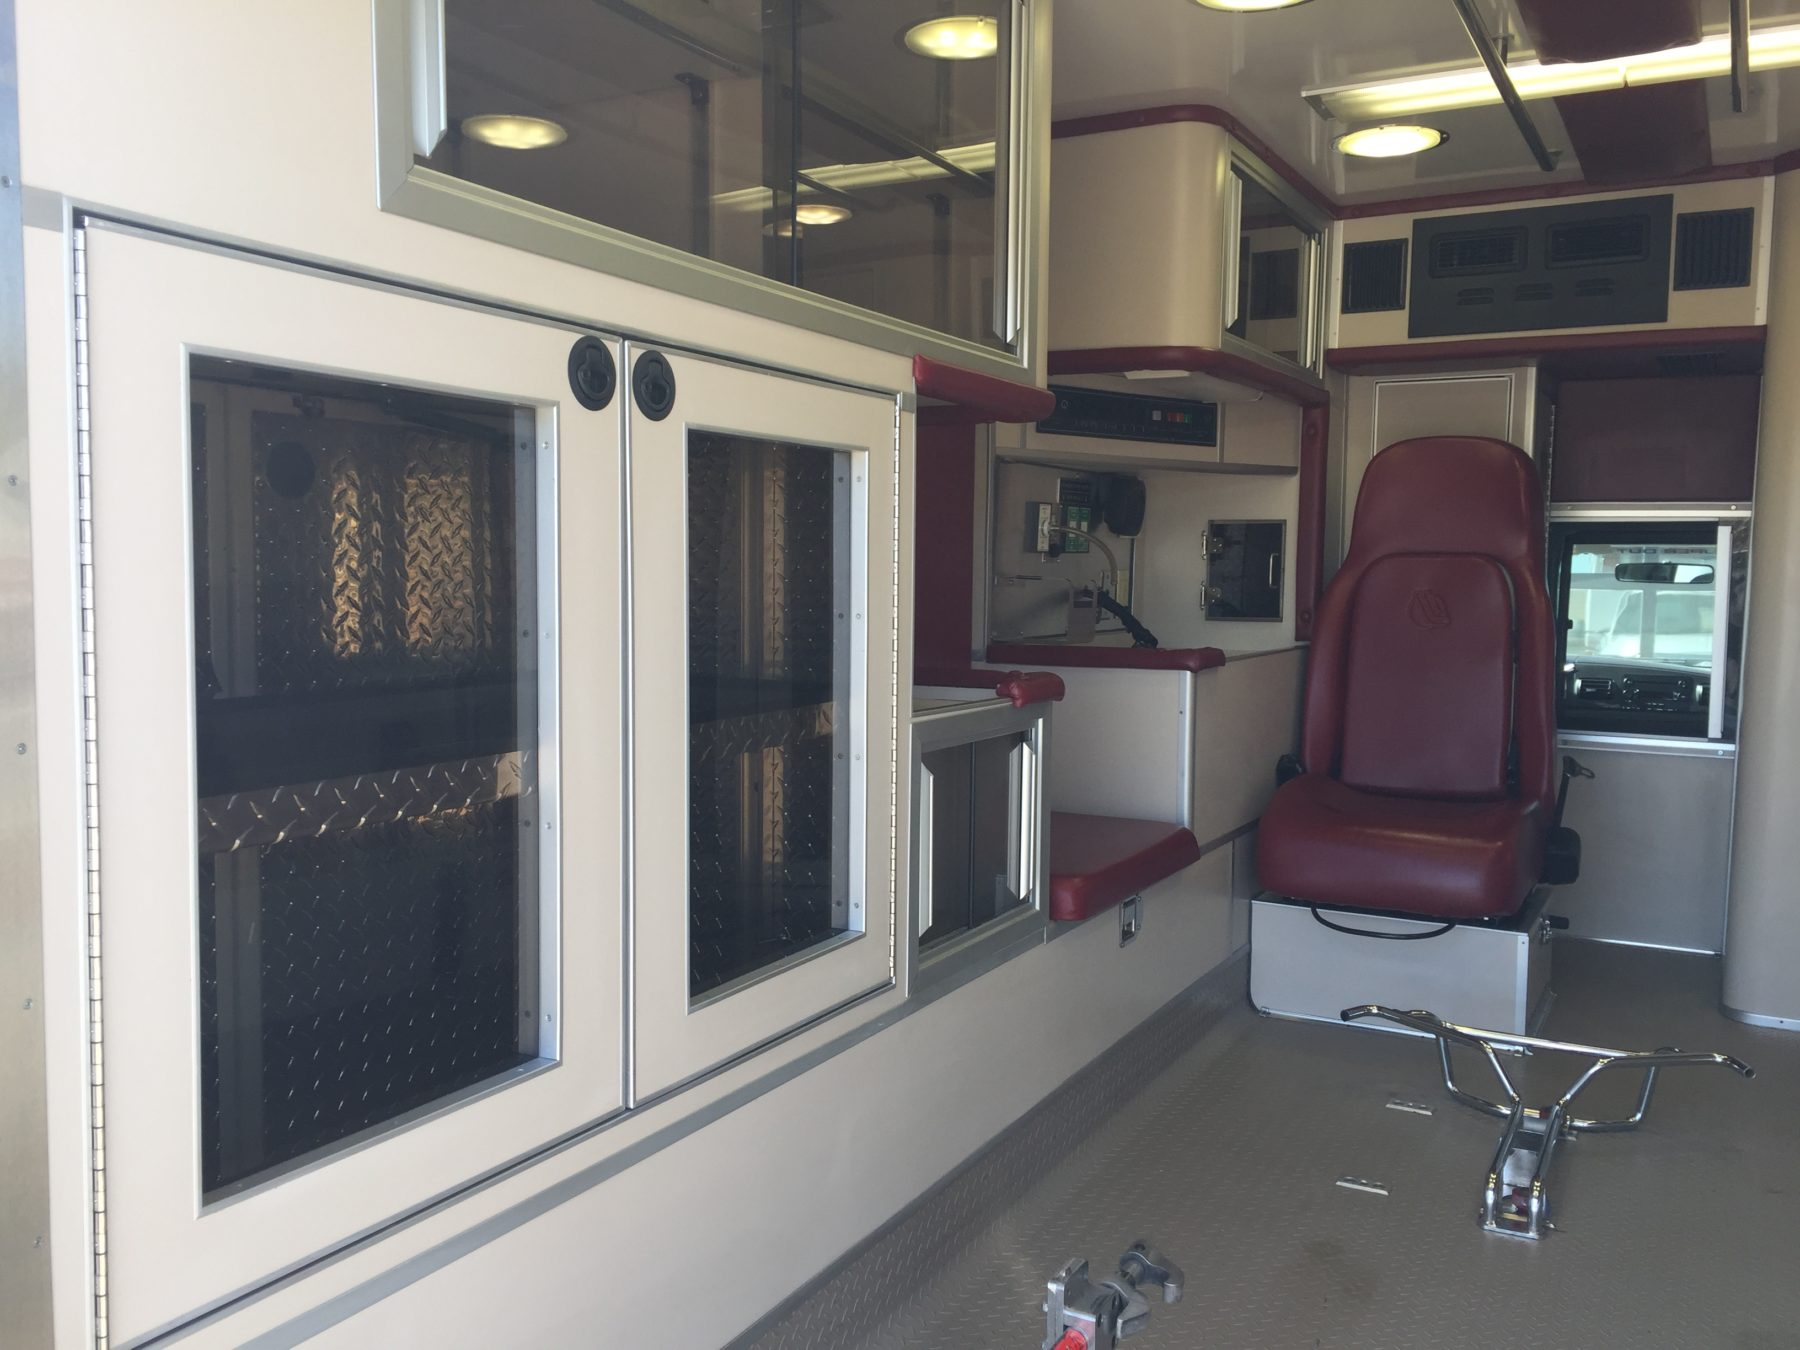 2006 Ford F450 4x4 Heavy Duty Ambulance For Sale – Picture 12